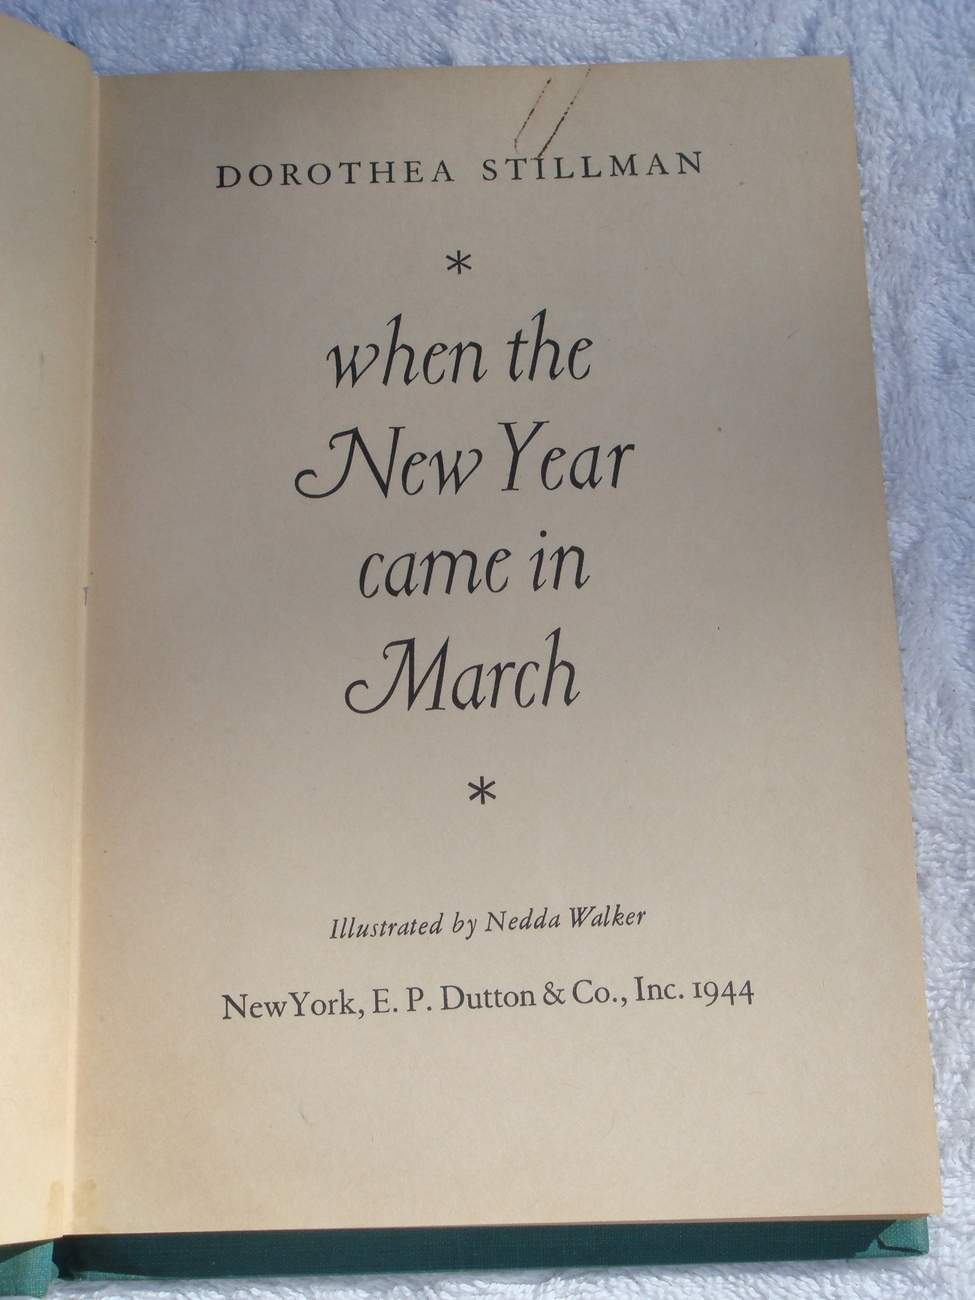 When the New Year Came in March autographed 1st edition by Dorothea Stillman hc